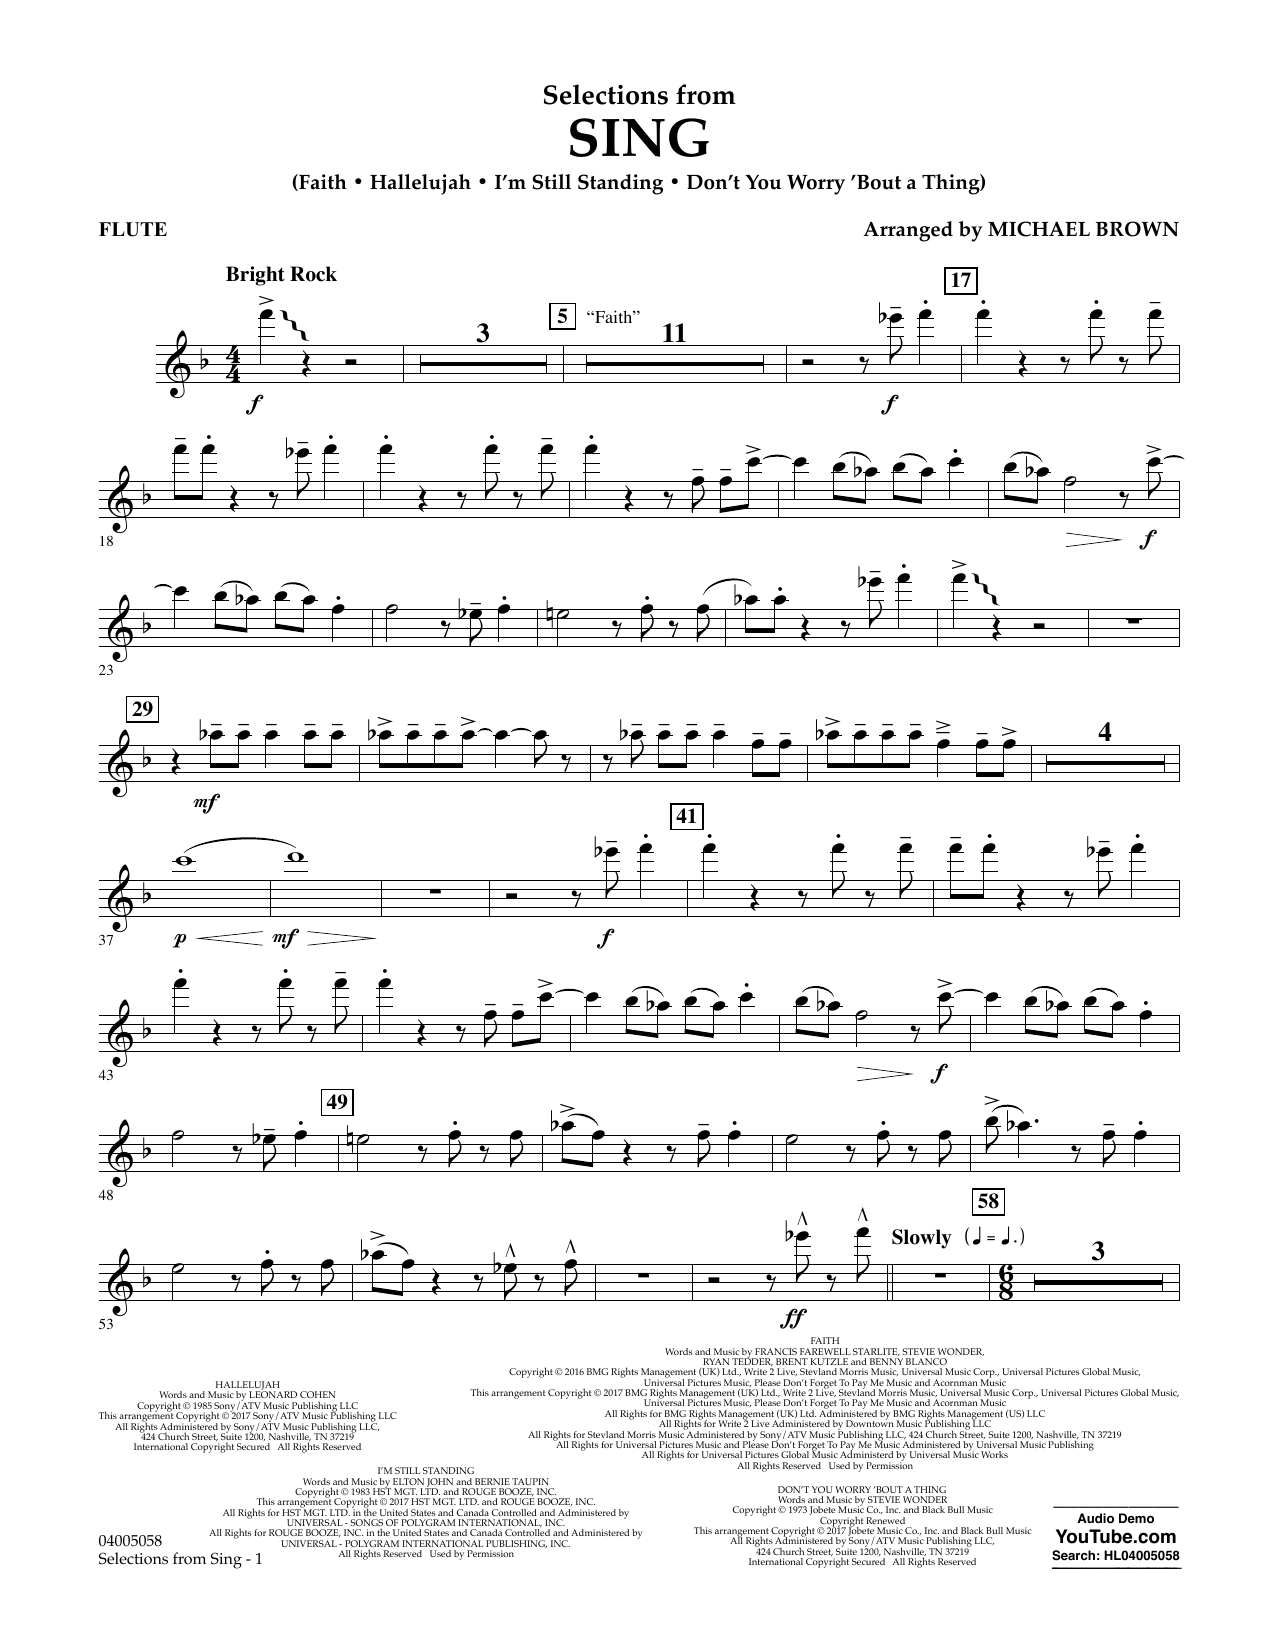 Selections from Sing - Flute Sheet Music